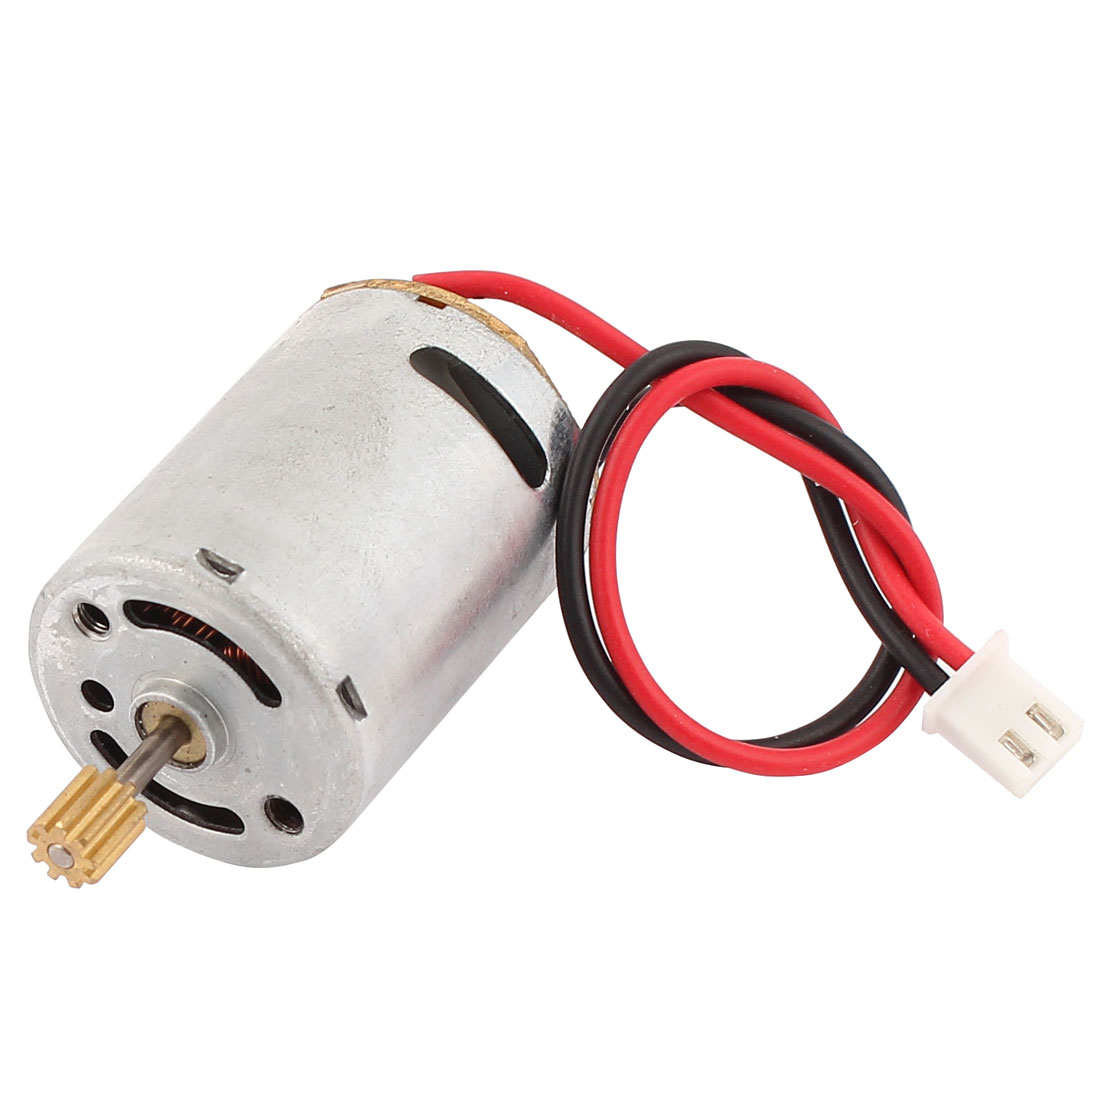 DC7.4V/ 31800 RPM 2mm Shaft Electric Mini Motor for RC Plane